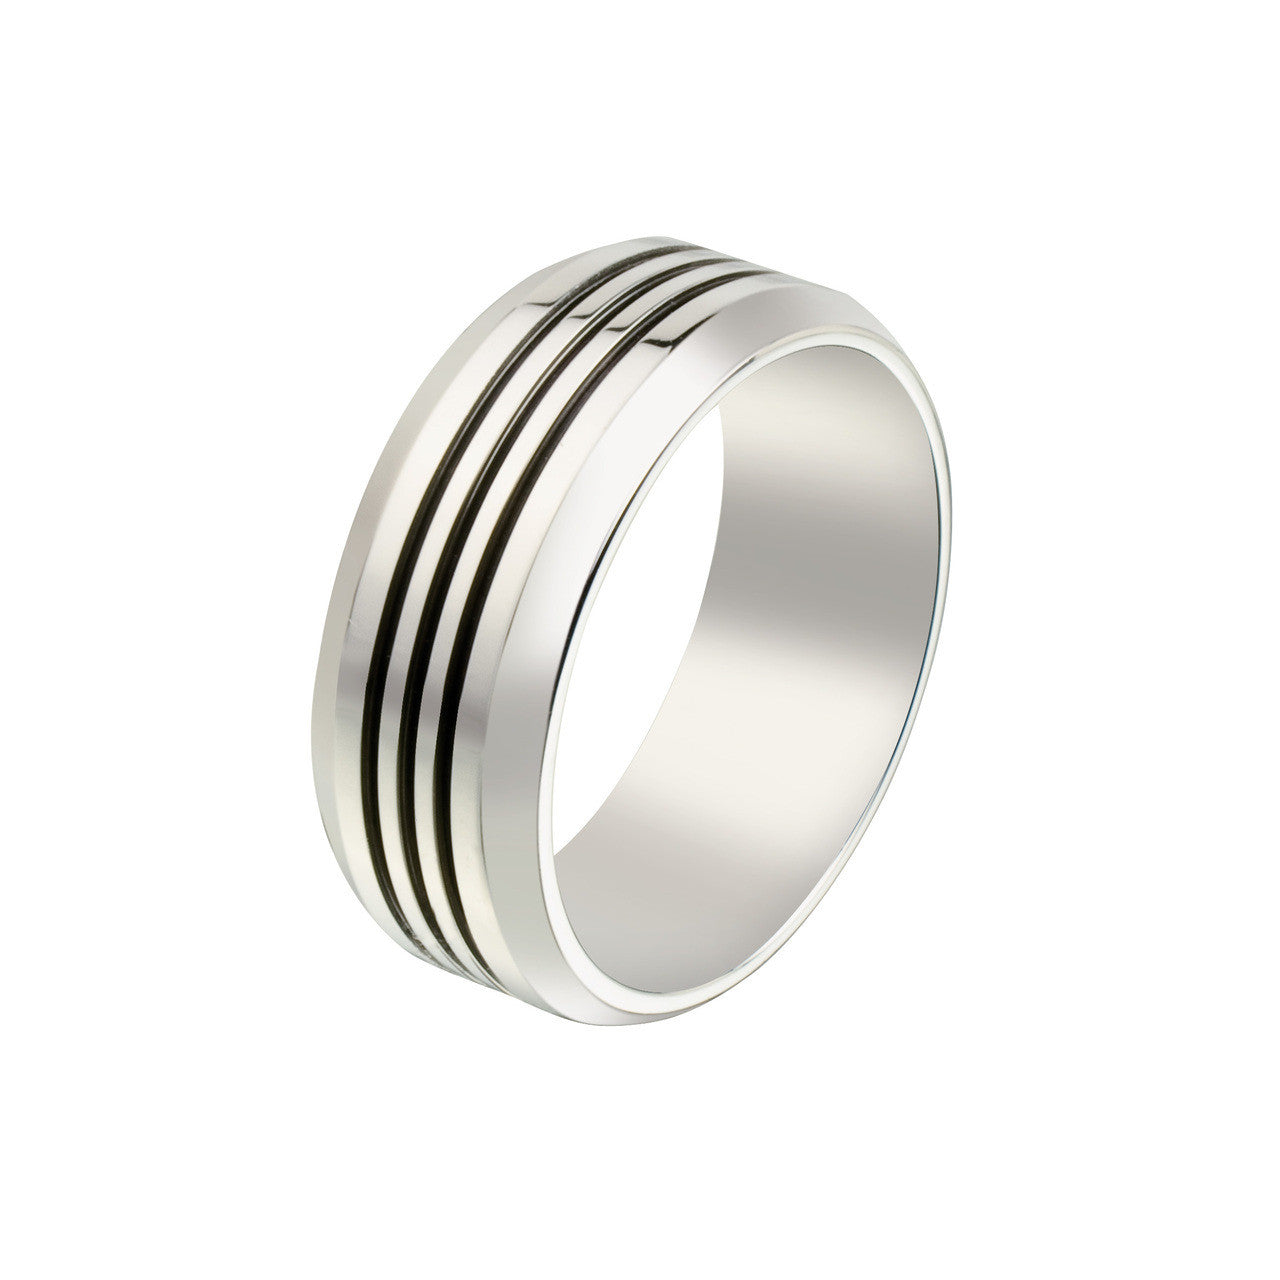 RSS10 stainless steel ring